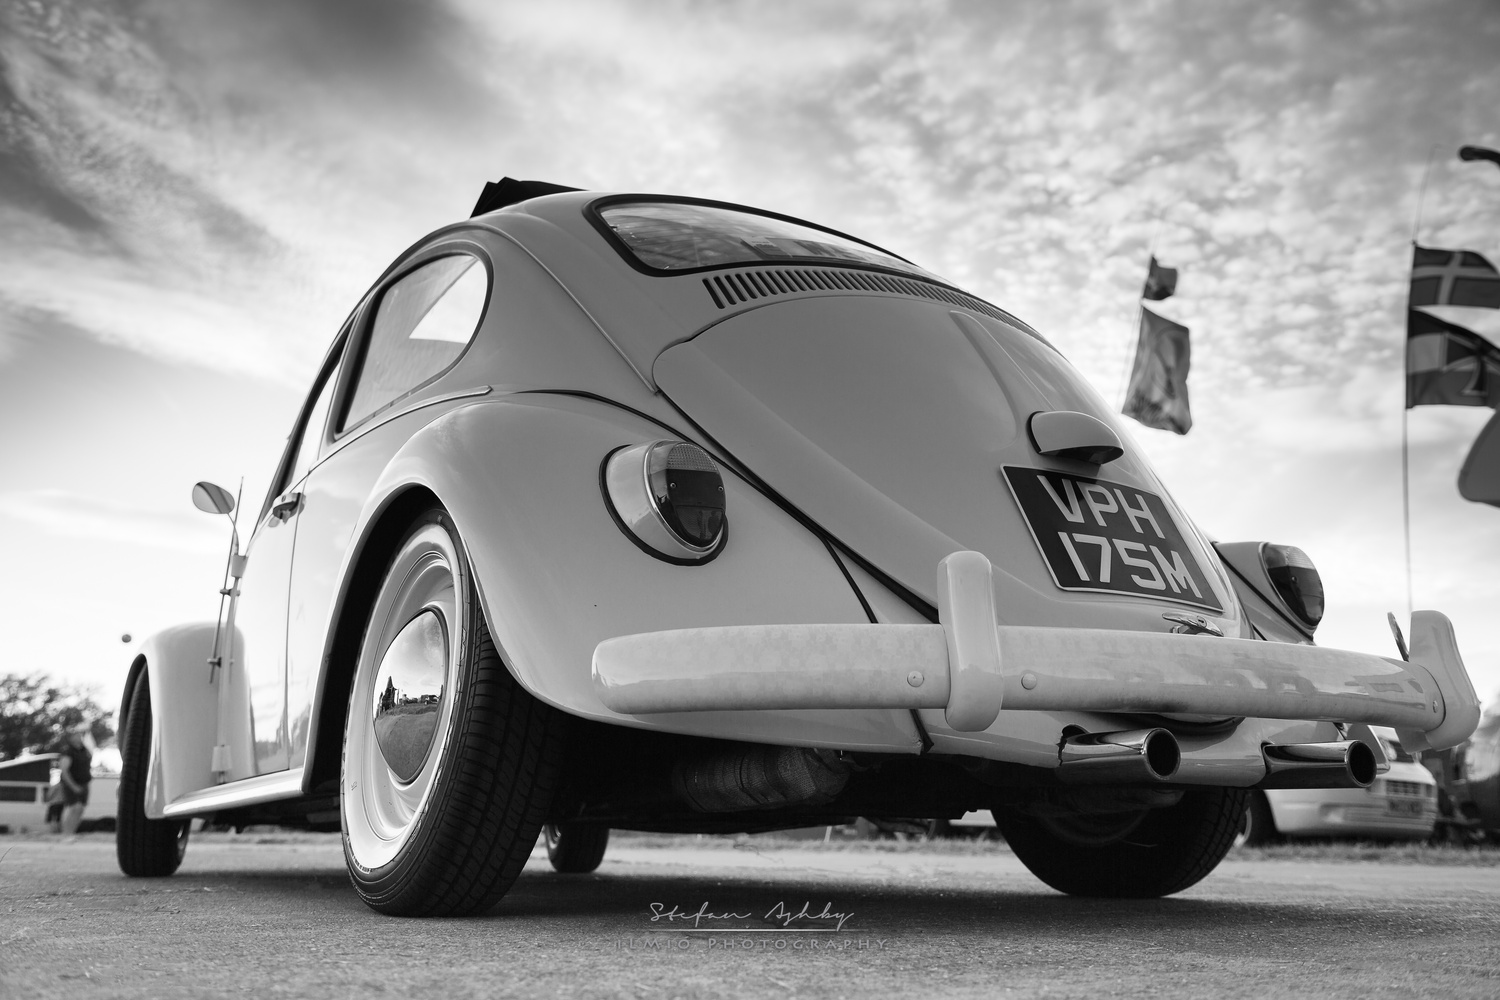 B&W VW Beatle by Stefan Ashby